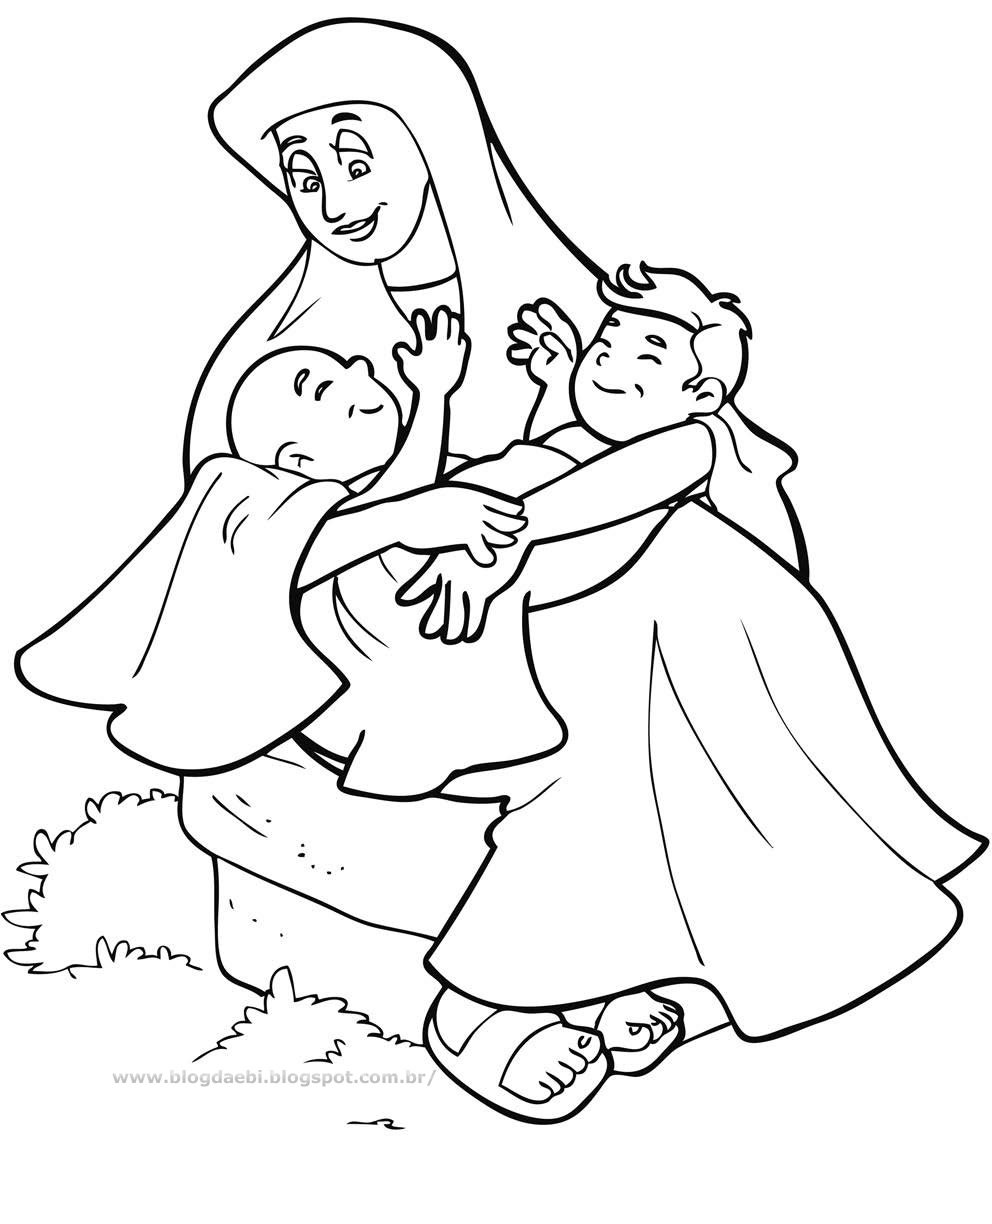 Free Esau And Jacob Coloring Pages 26 About Remodel Coloring Pages